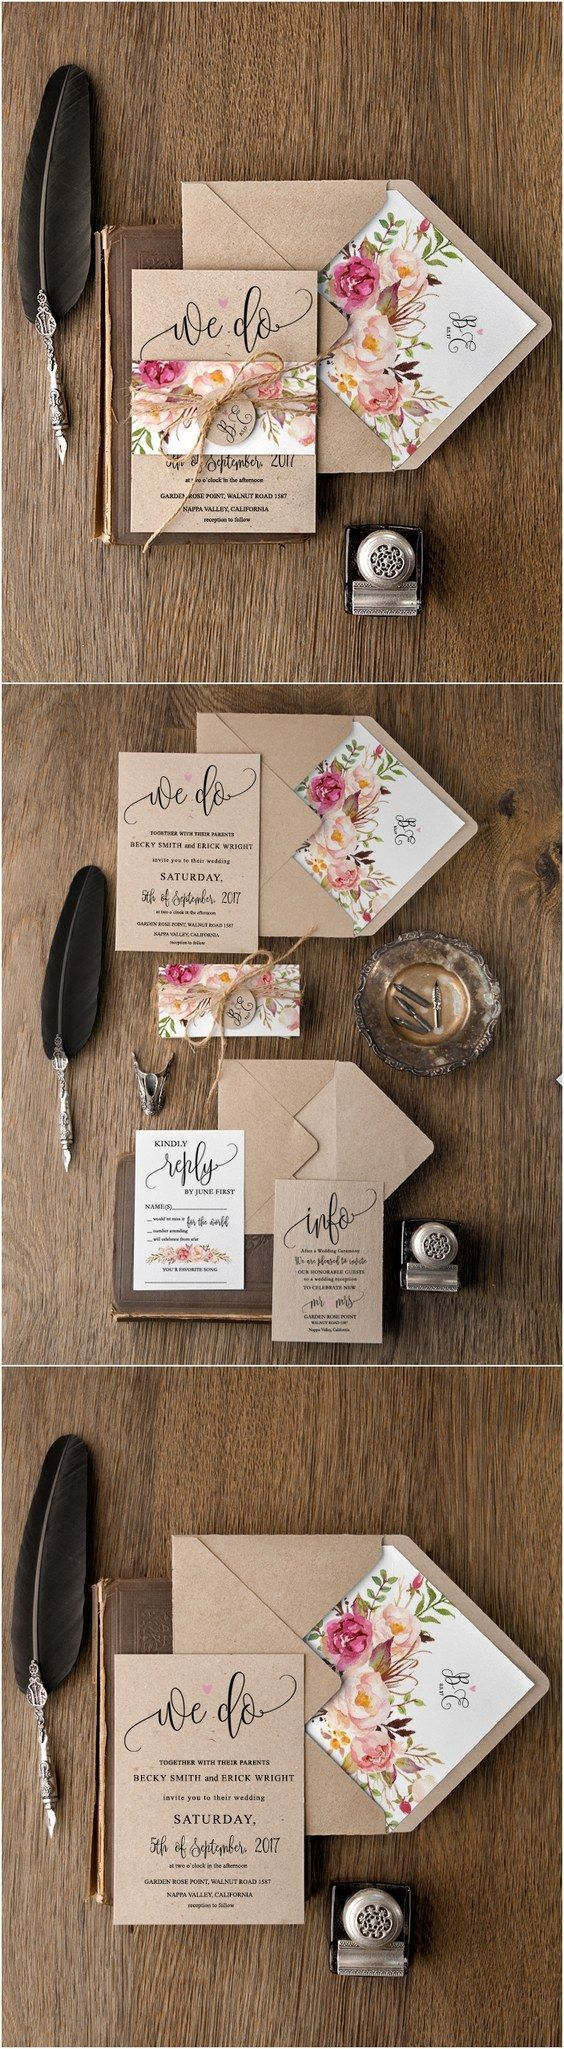 Rustic country peach and pink kraft paper wedding invitations ...